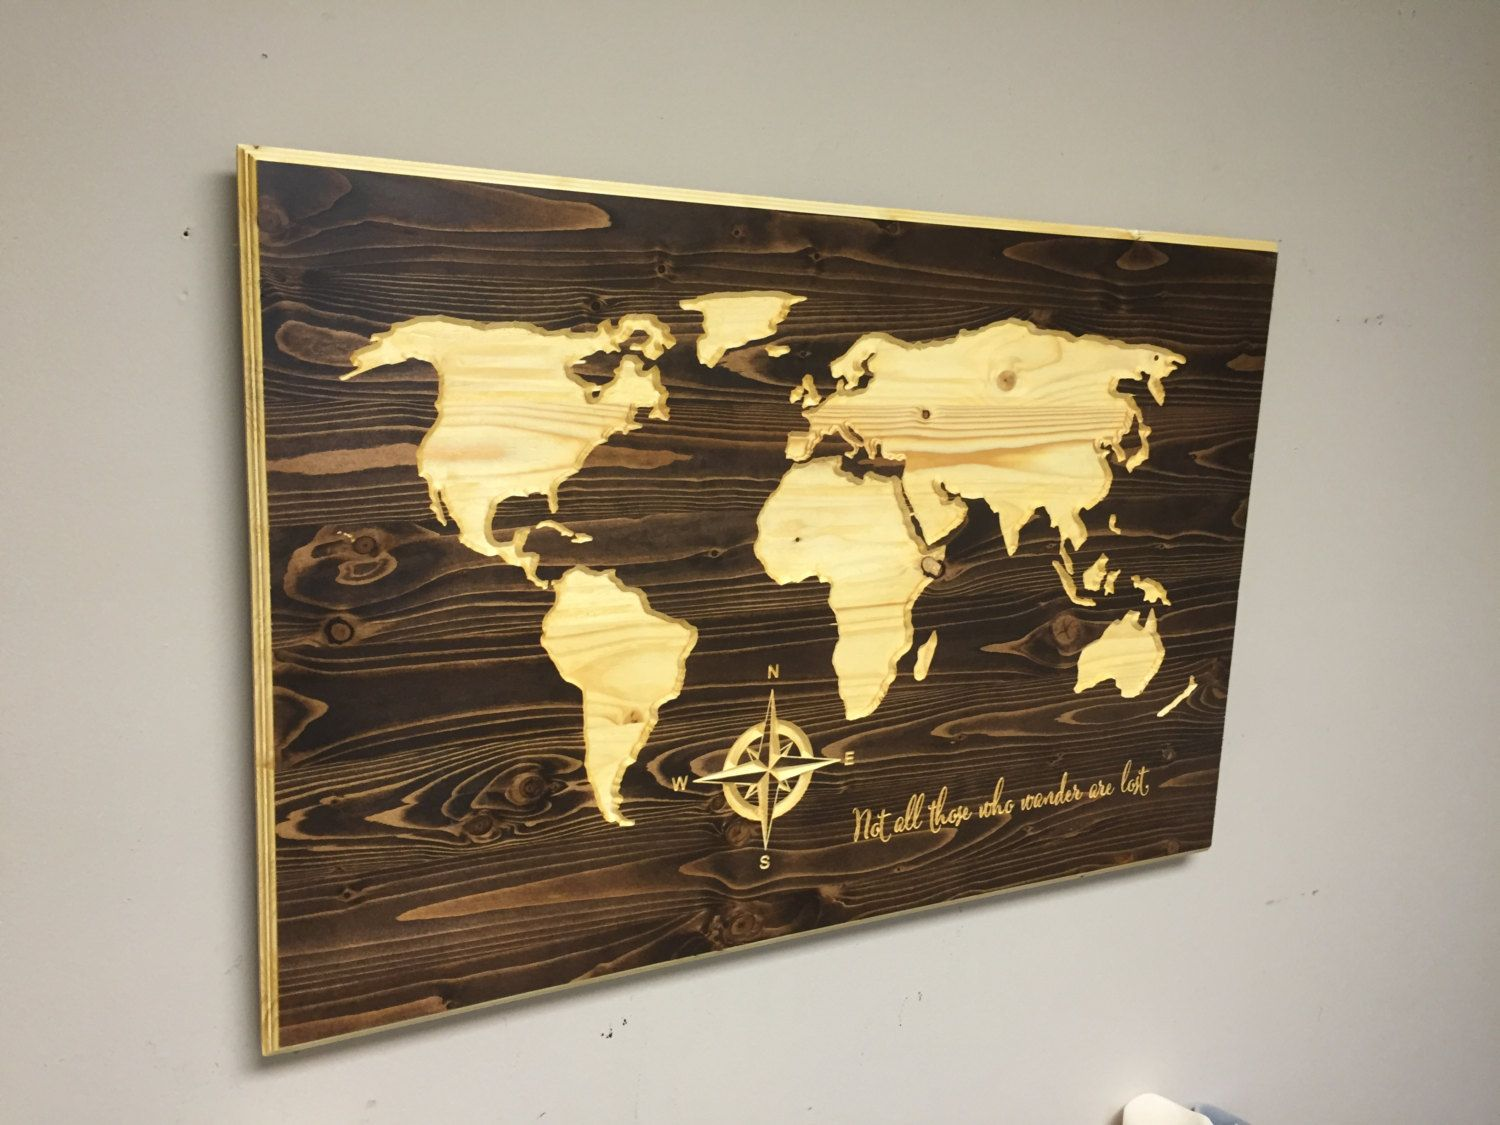 Wooden world map wall art wood world map wall art images world map wooden world map wall art wall decor instadecor gumiabroncs Image collections